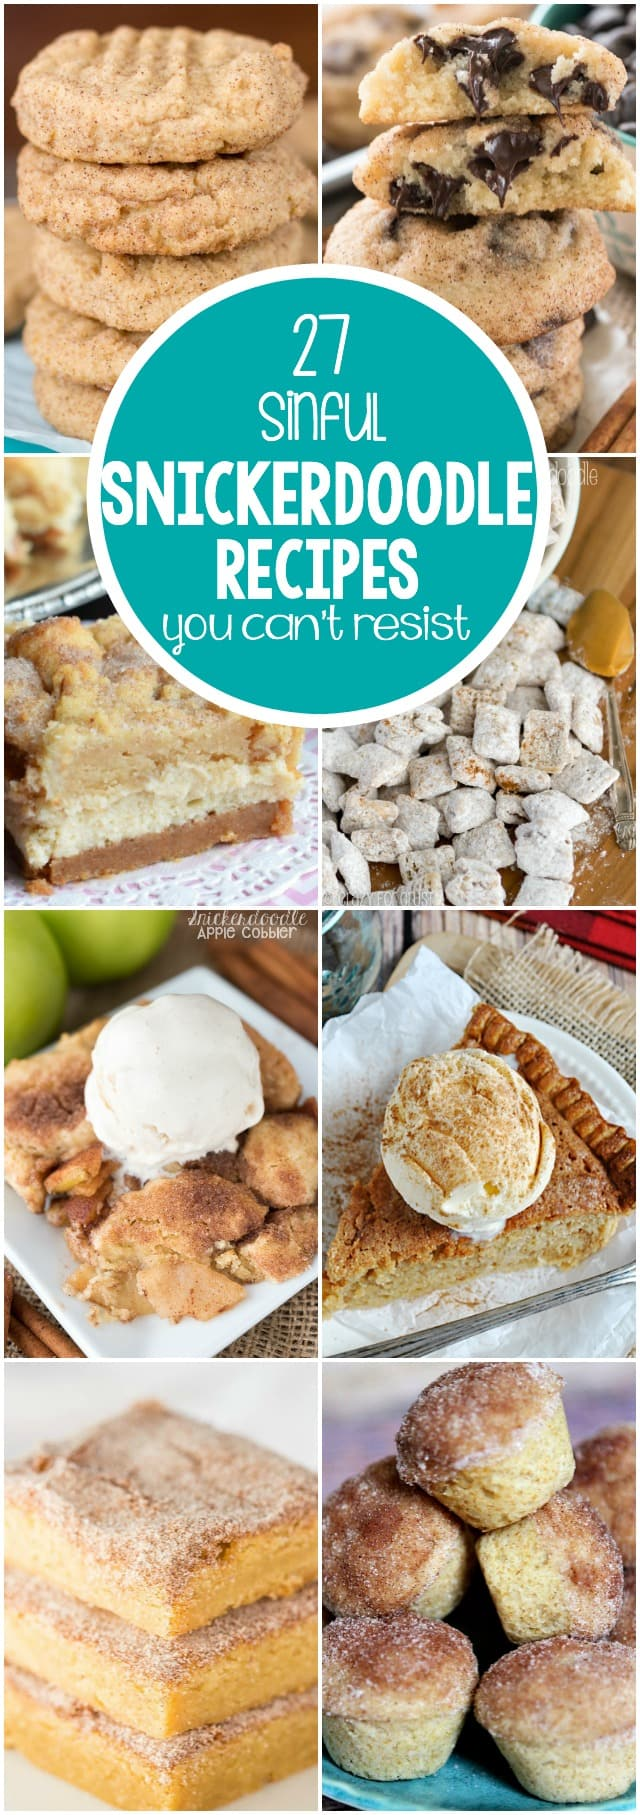 27 Snickerdoodle Recipes you can't resist! There is something for every craving: cookies, pie, even breakfast recipes!